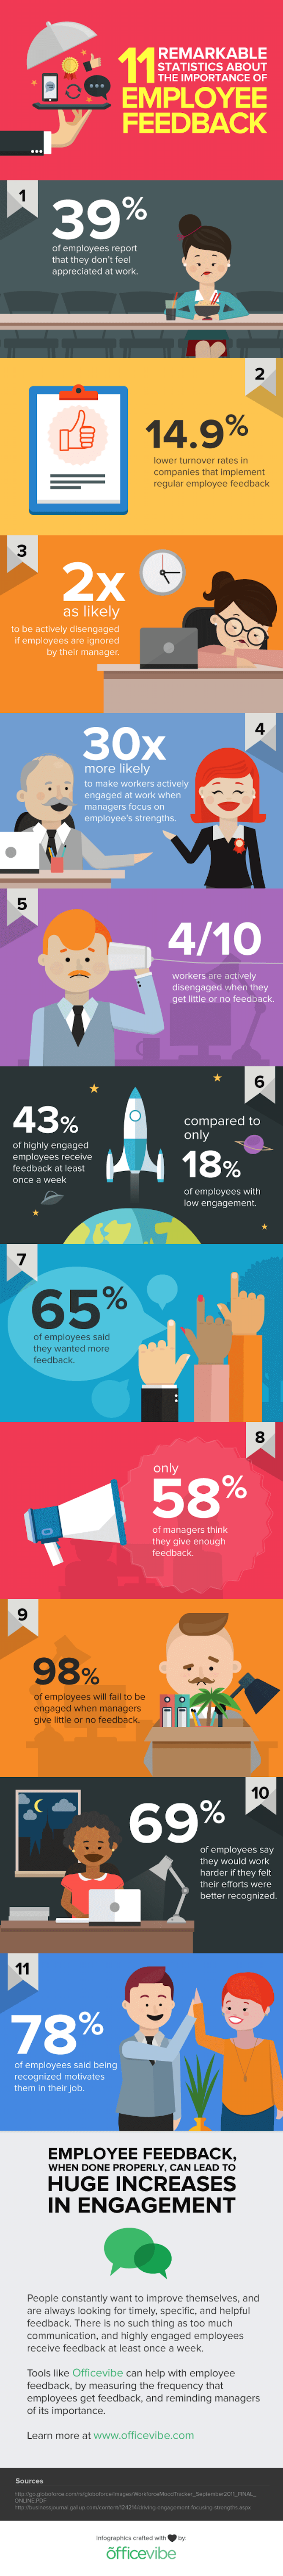 11 Eye-Opening Statistics on the Importance of Employee Feedback Infographic | Source: HubSpot